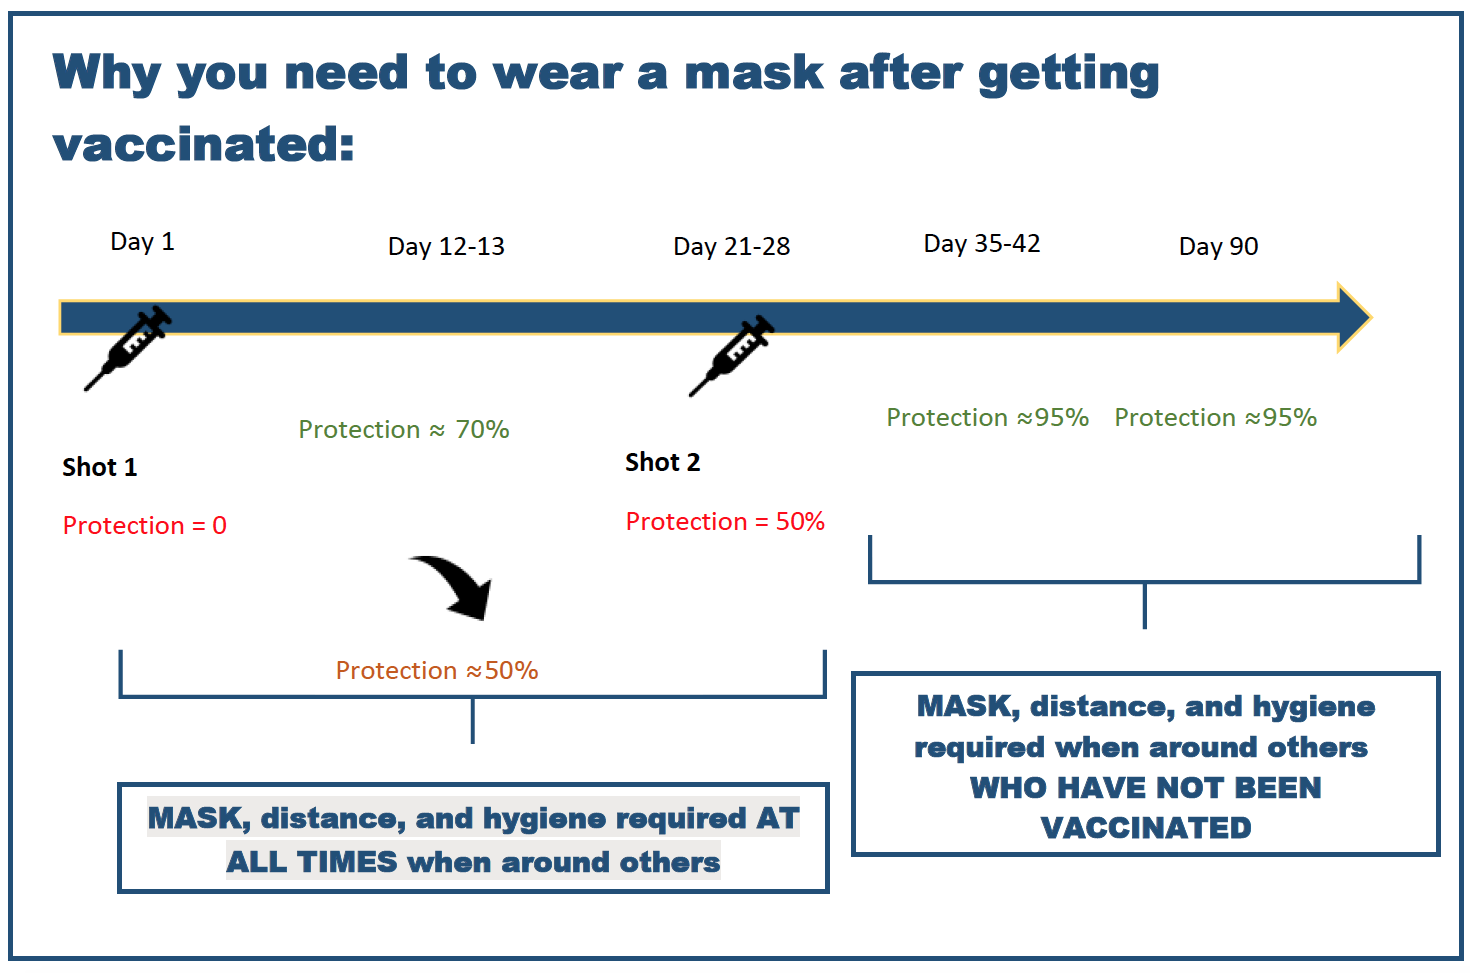 Timeline showing why you need to wear a mask after getting vaccinated